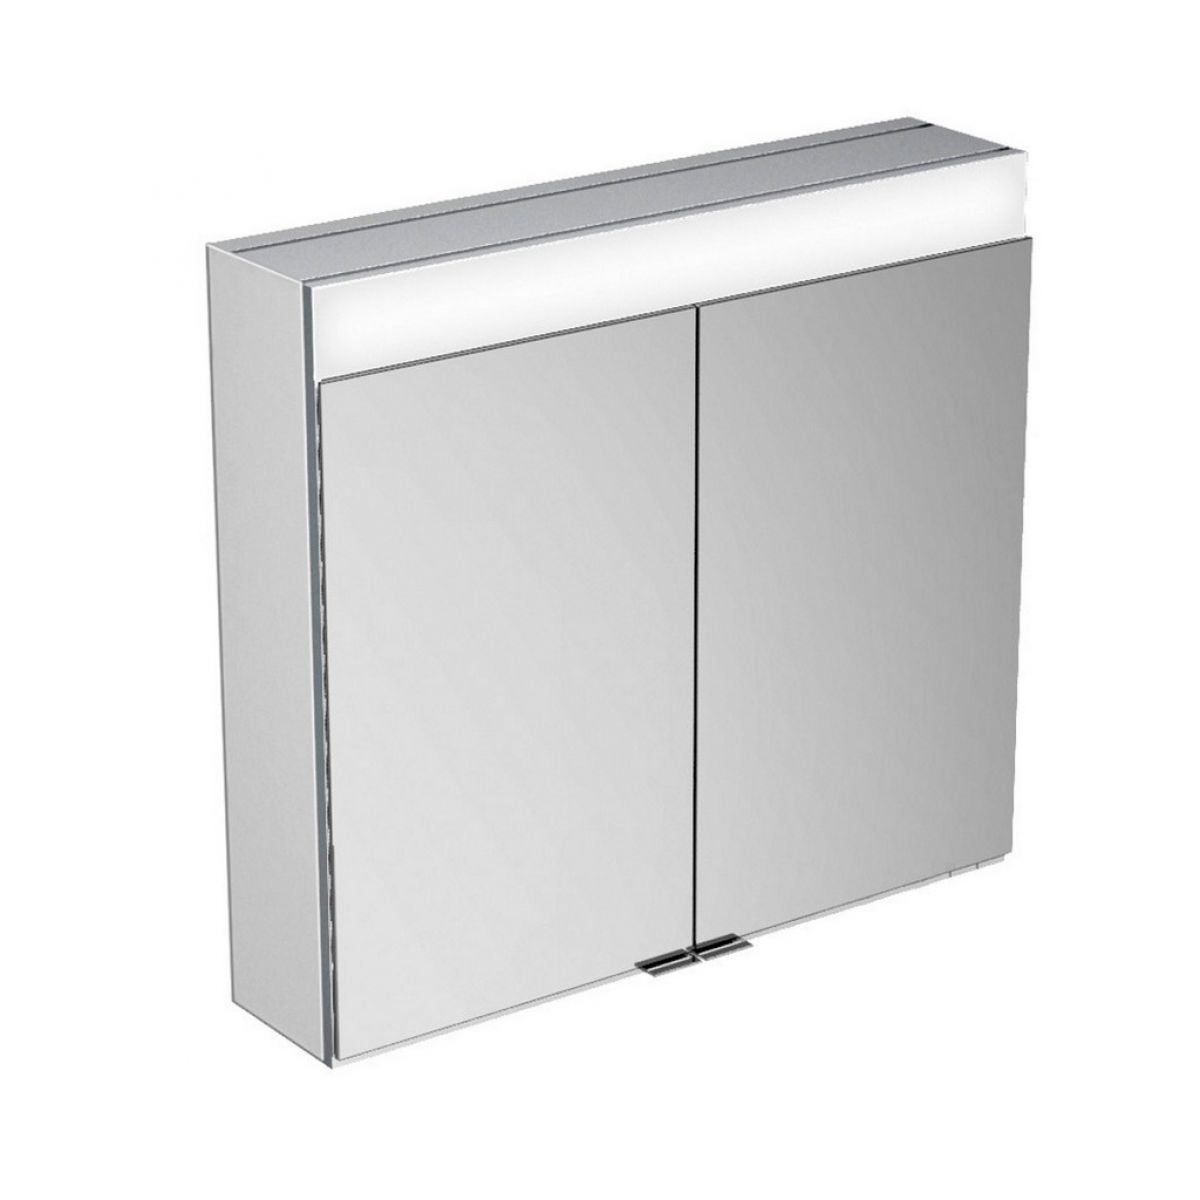 Keuco edition 400 mirror cabinet uk bathrooms - Bathroom cabinets keuco ...